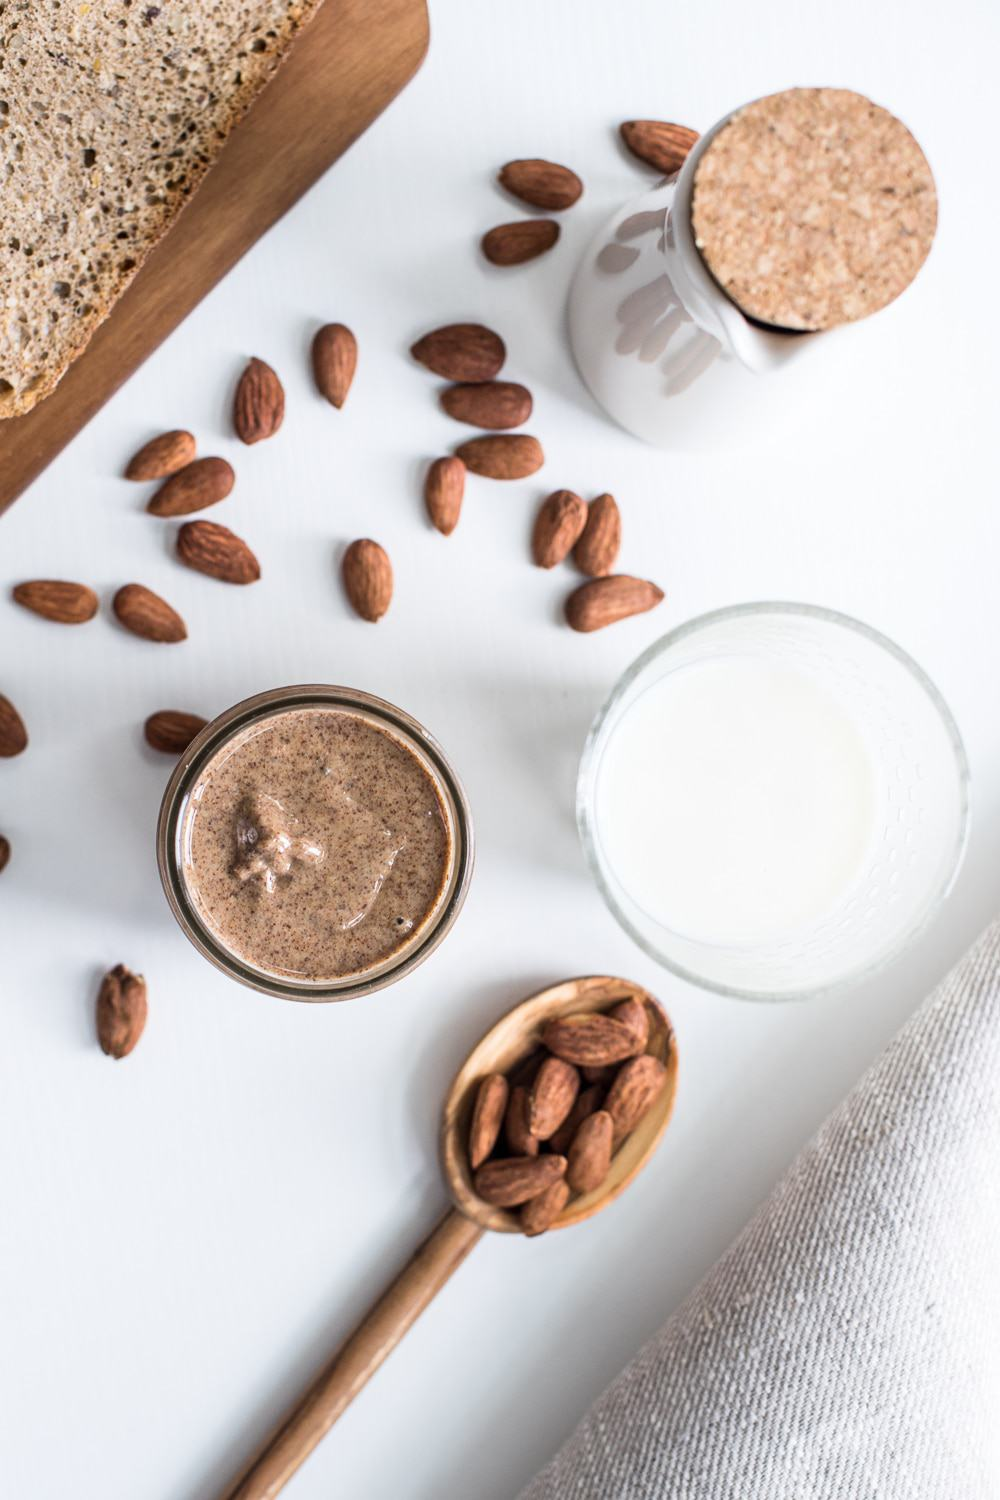 Full of goodness and protein, this awesome almond butter is the perfect snack! All you need are some almond and a food processor, job done!